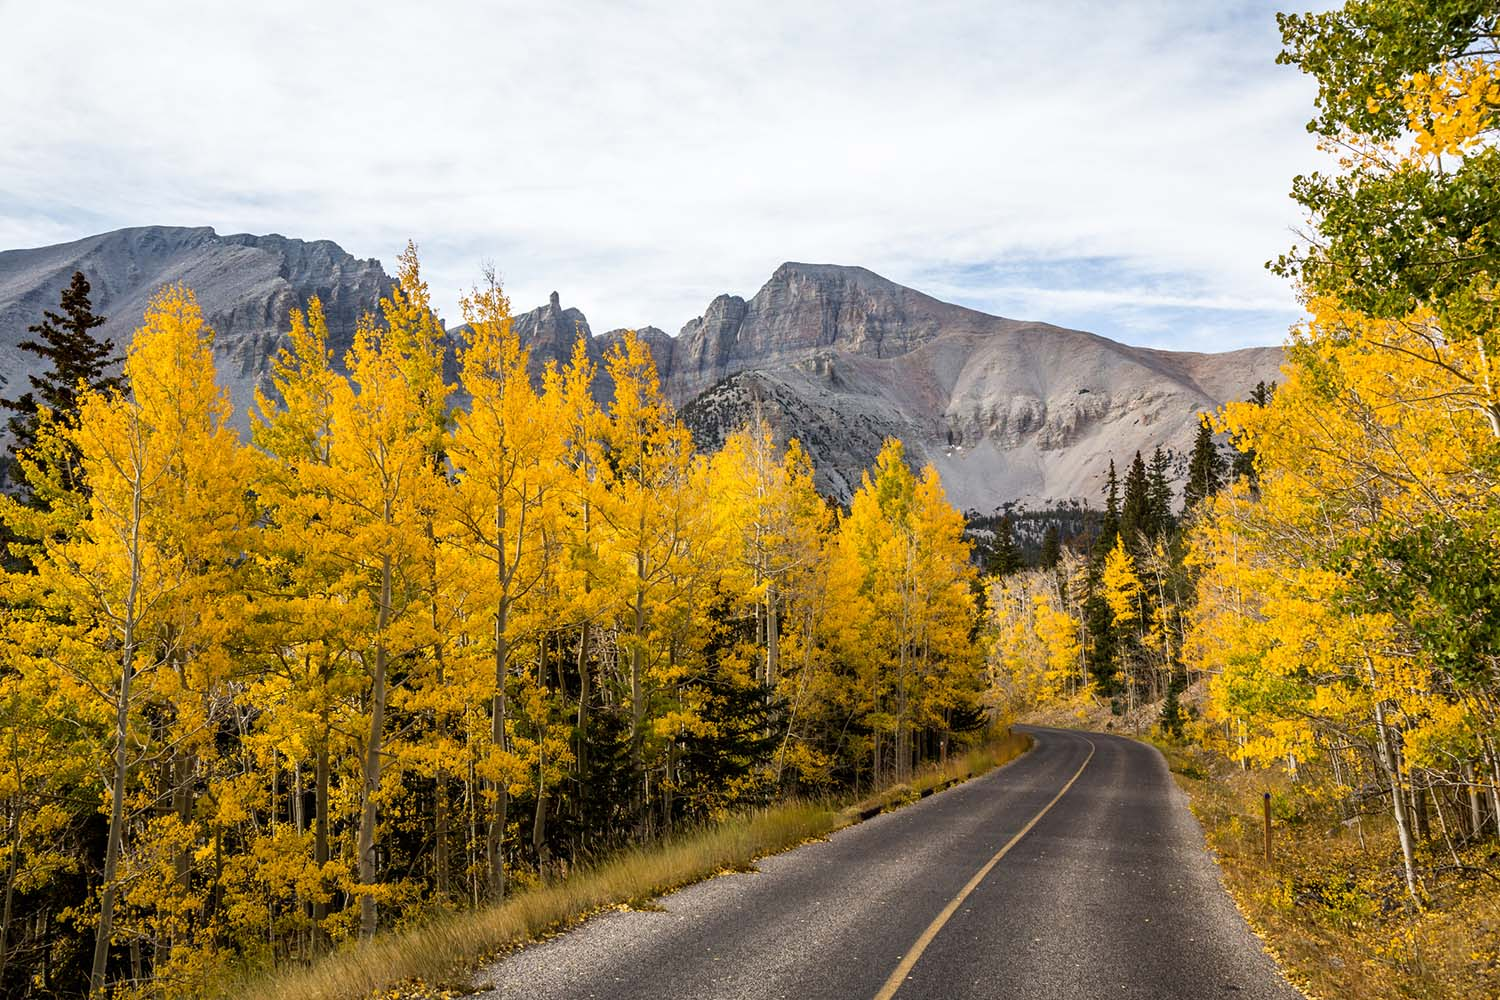 A road flanked by golden aspen trees.